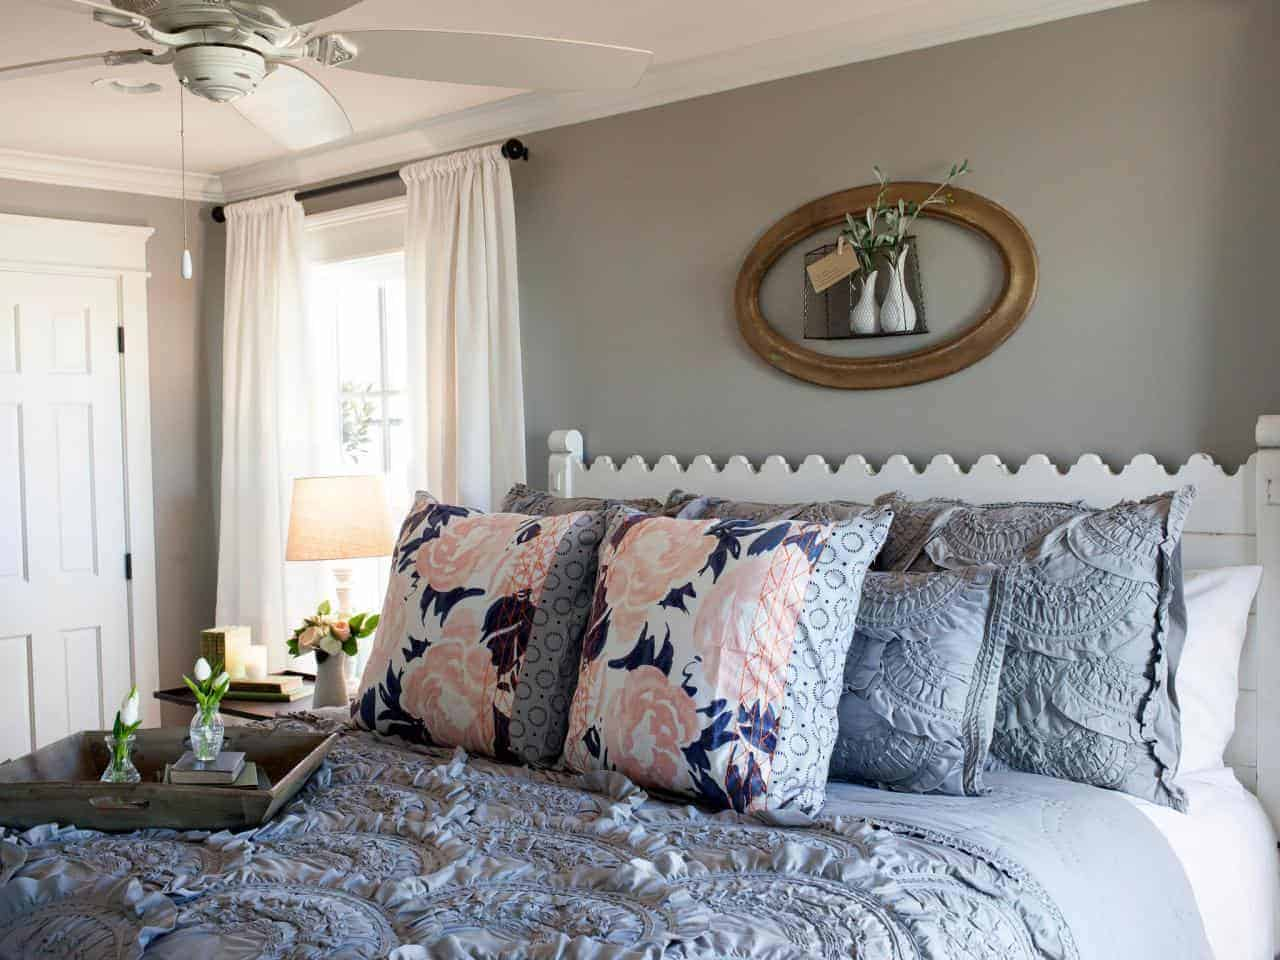 joanna gaines fixer upper style recreate her bedroom. Black Bedroom Furniture Sets. Home Design Ideas